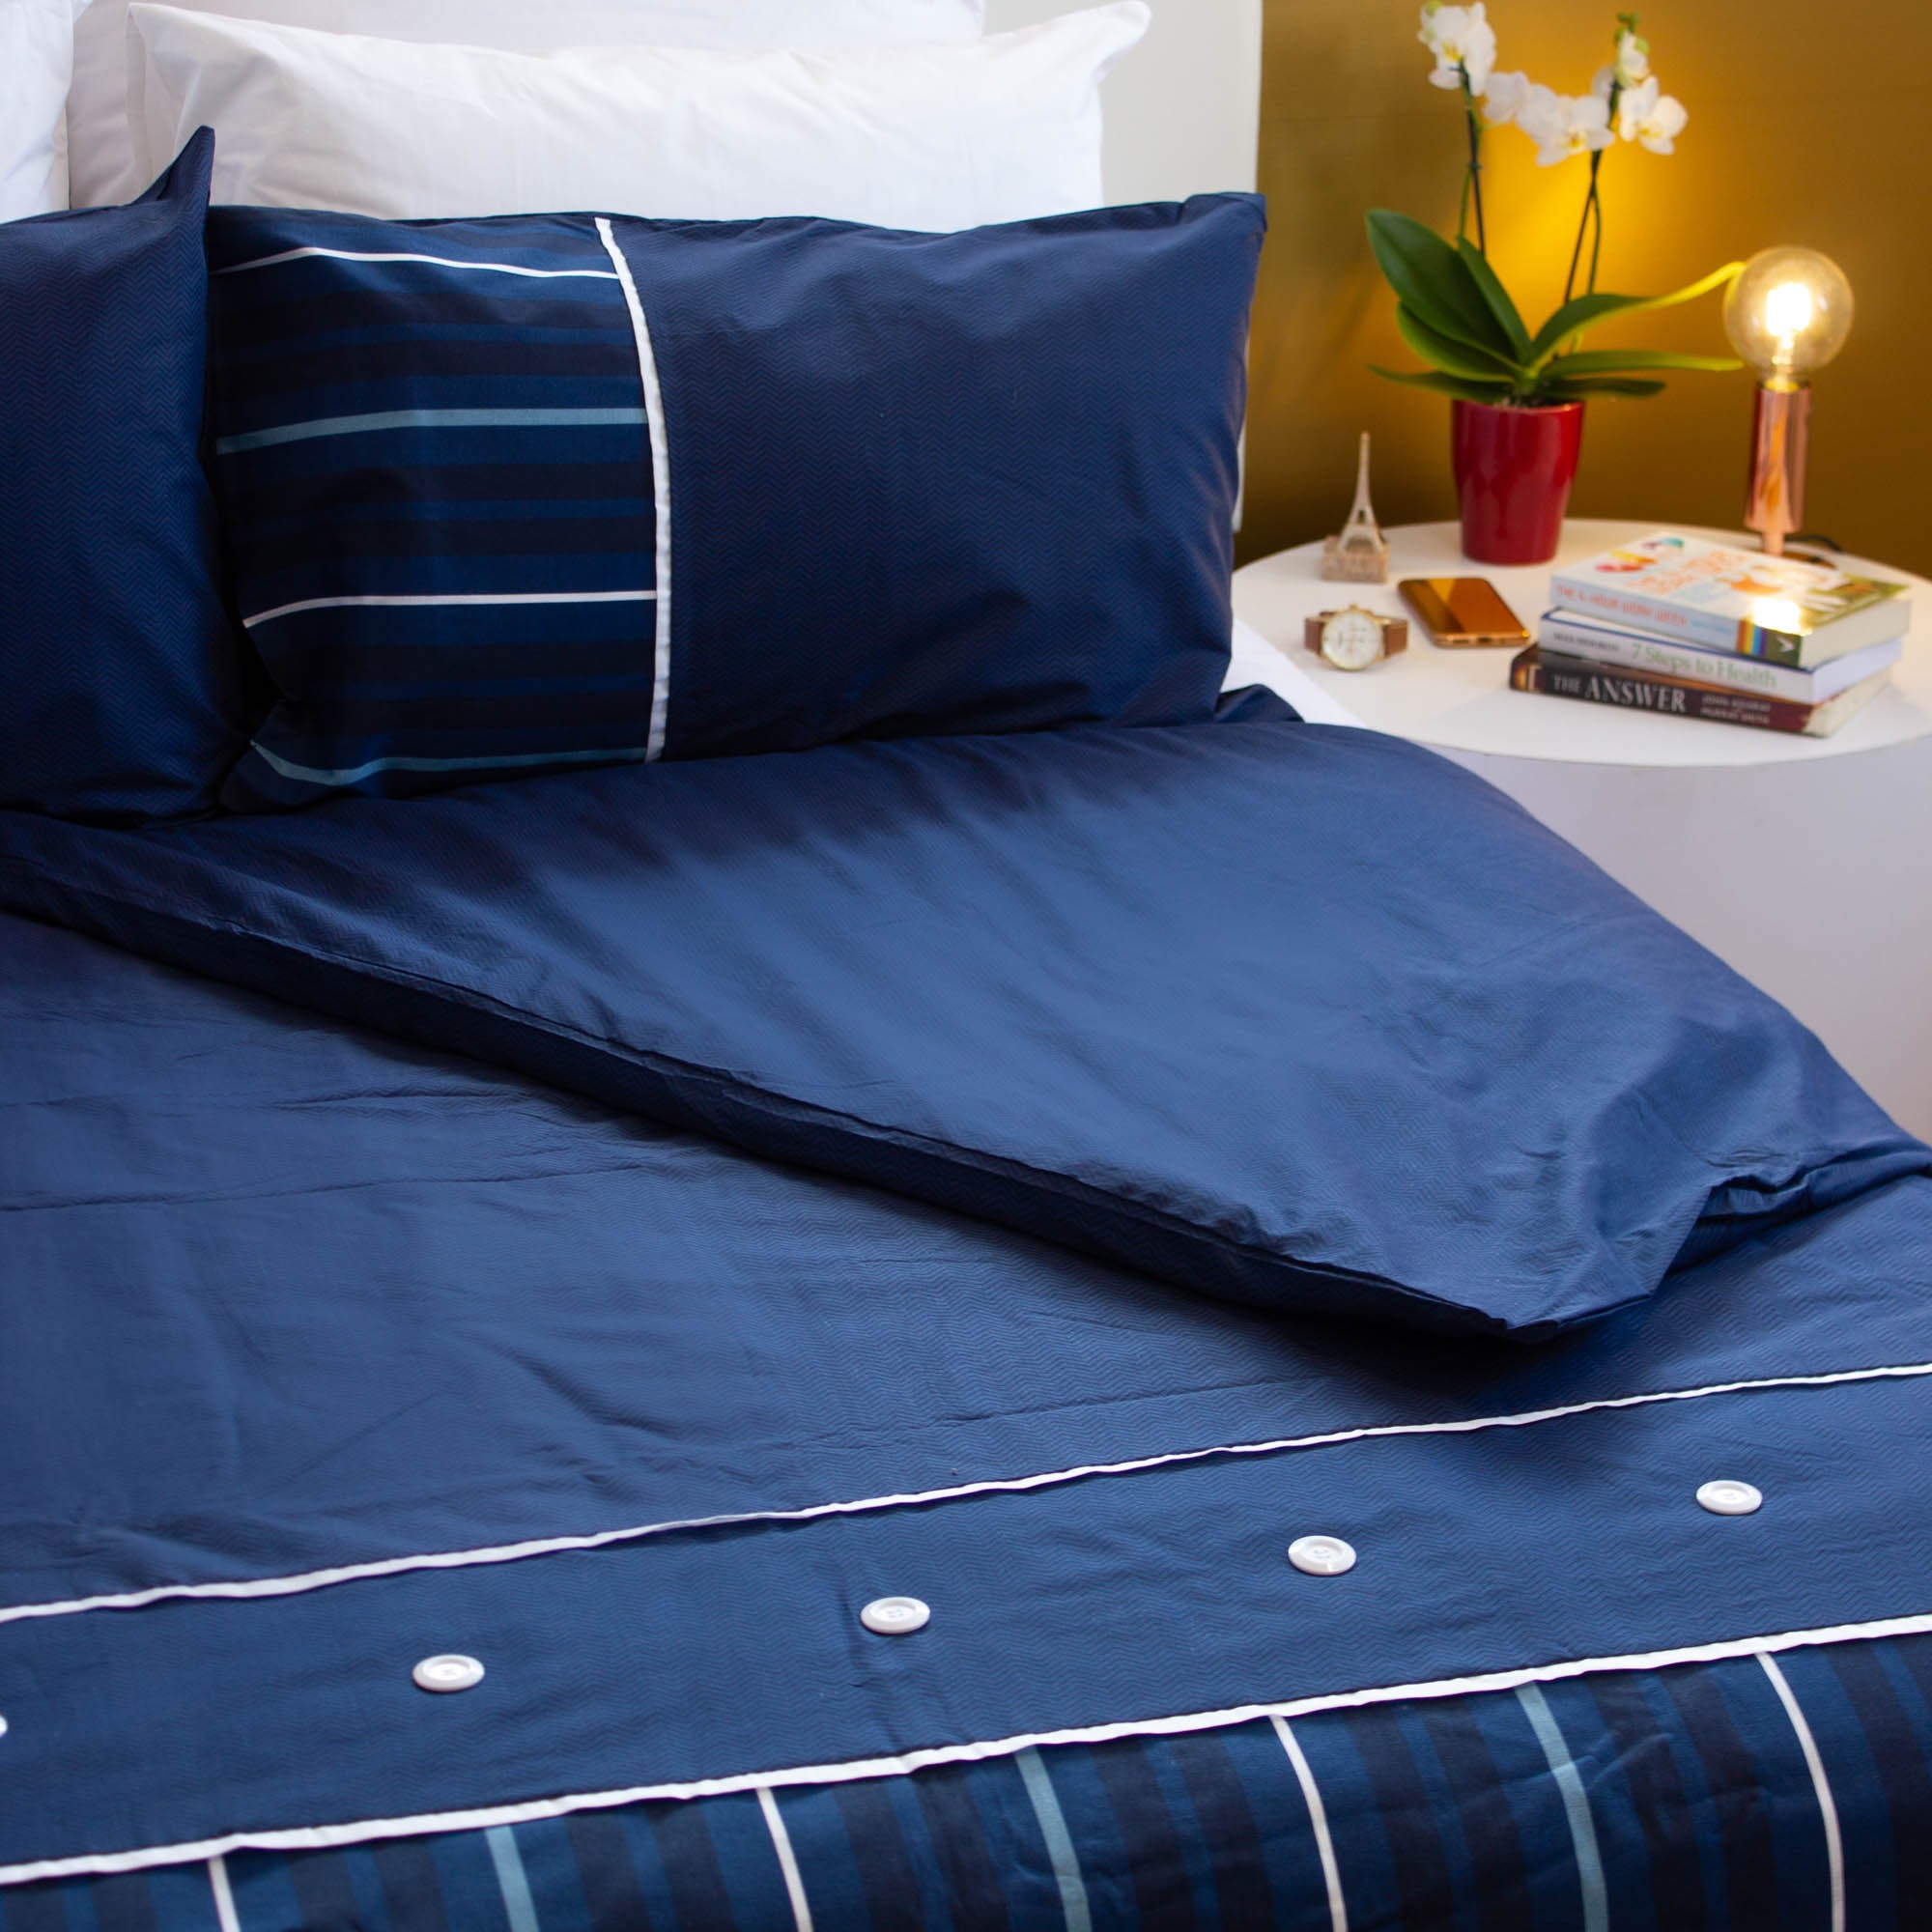 Duvet Cover Set - Nautical Blue - King